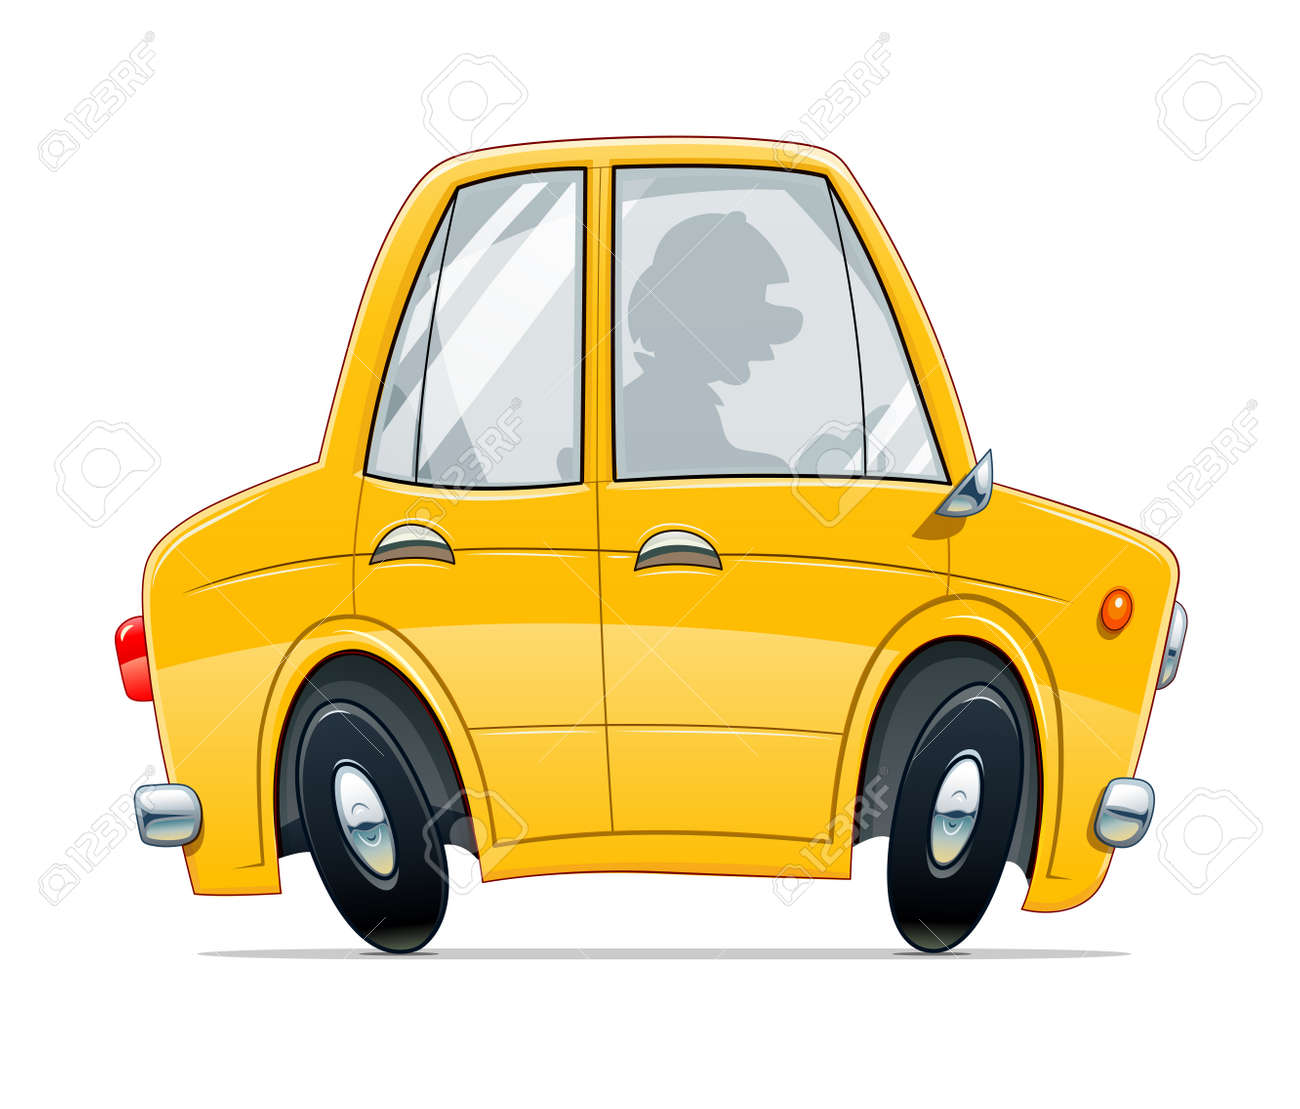 Vintage yellow car. Cartoon character, Isolated on white background. - 168582641